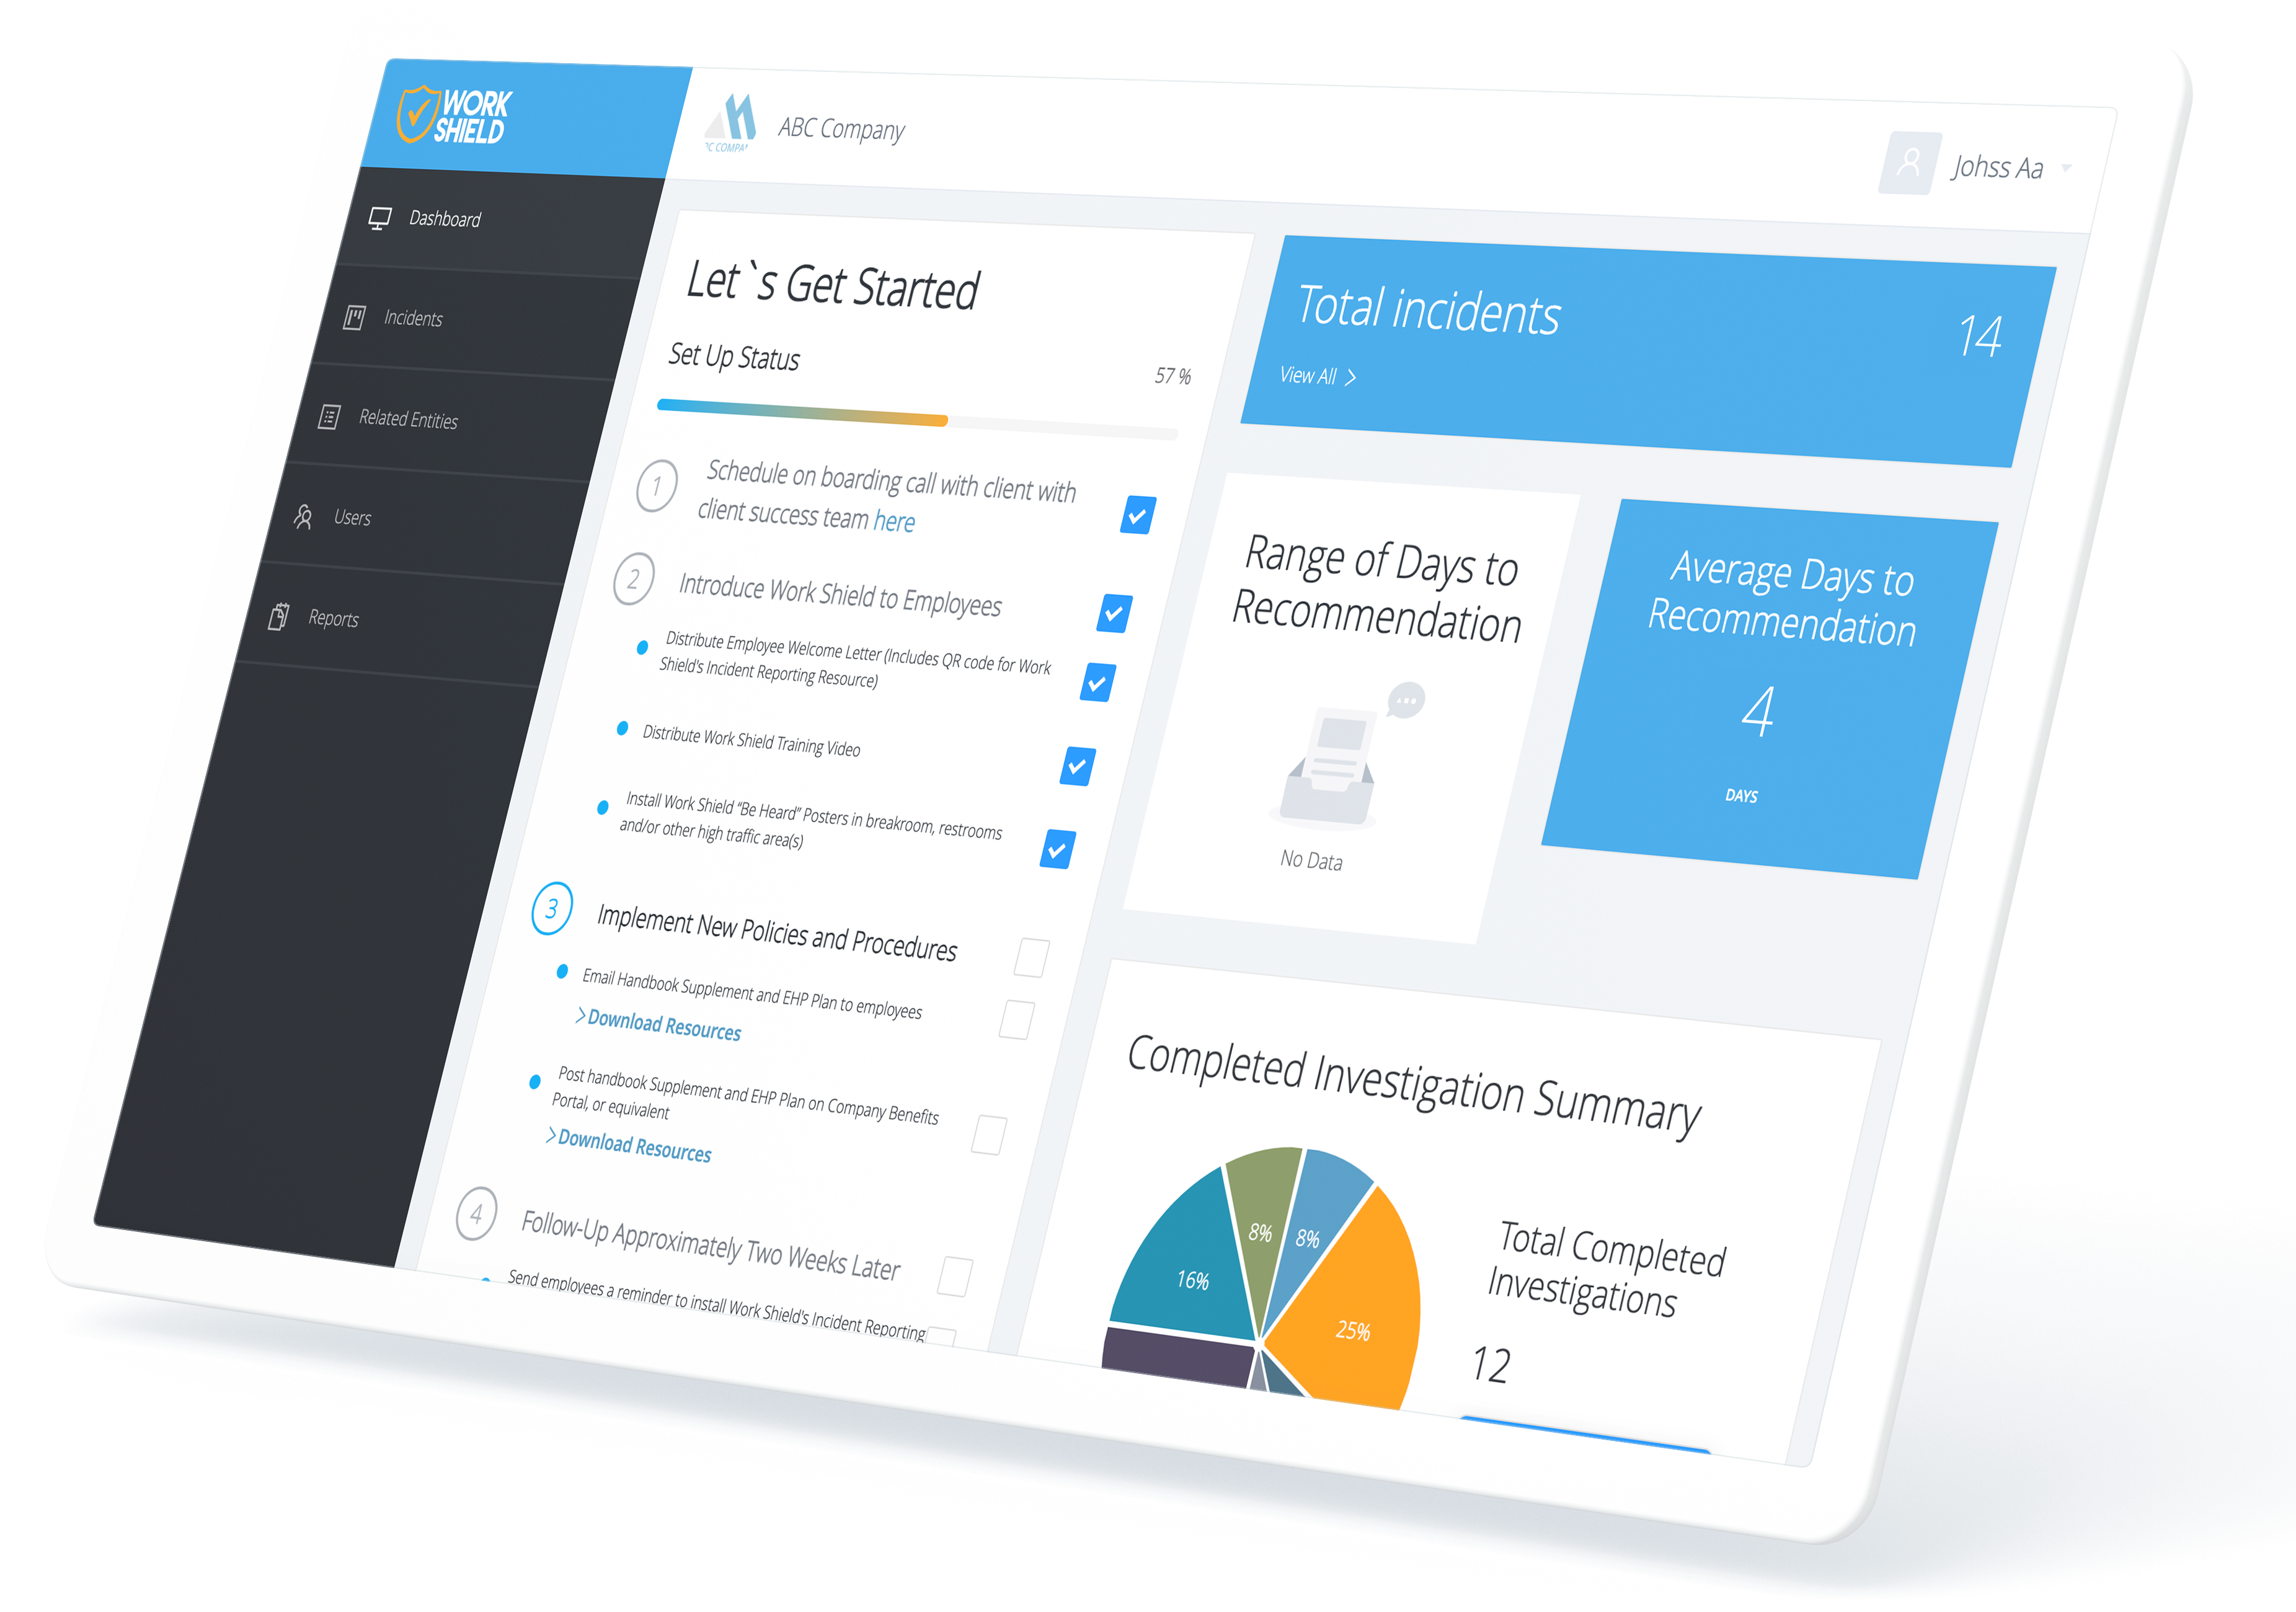 Work Shield combines technology and people to resolve misconduct in the workplace